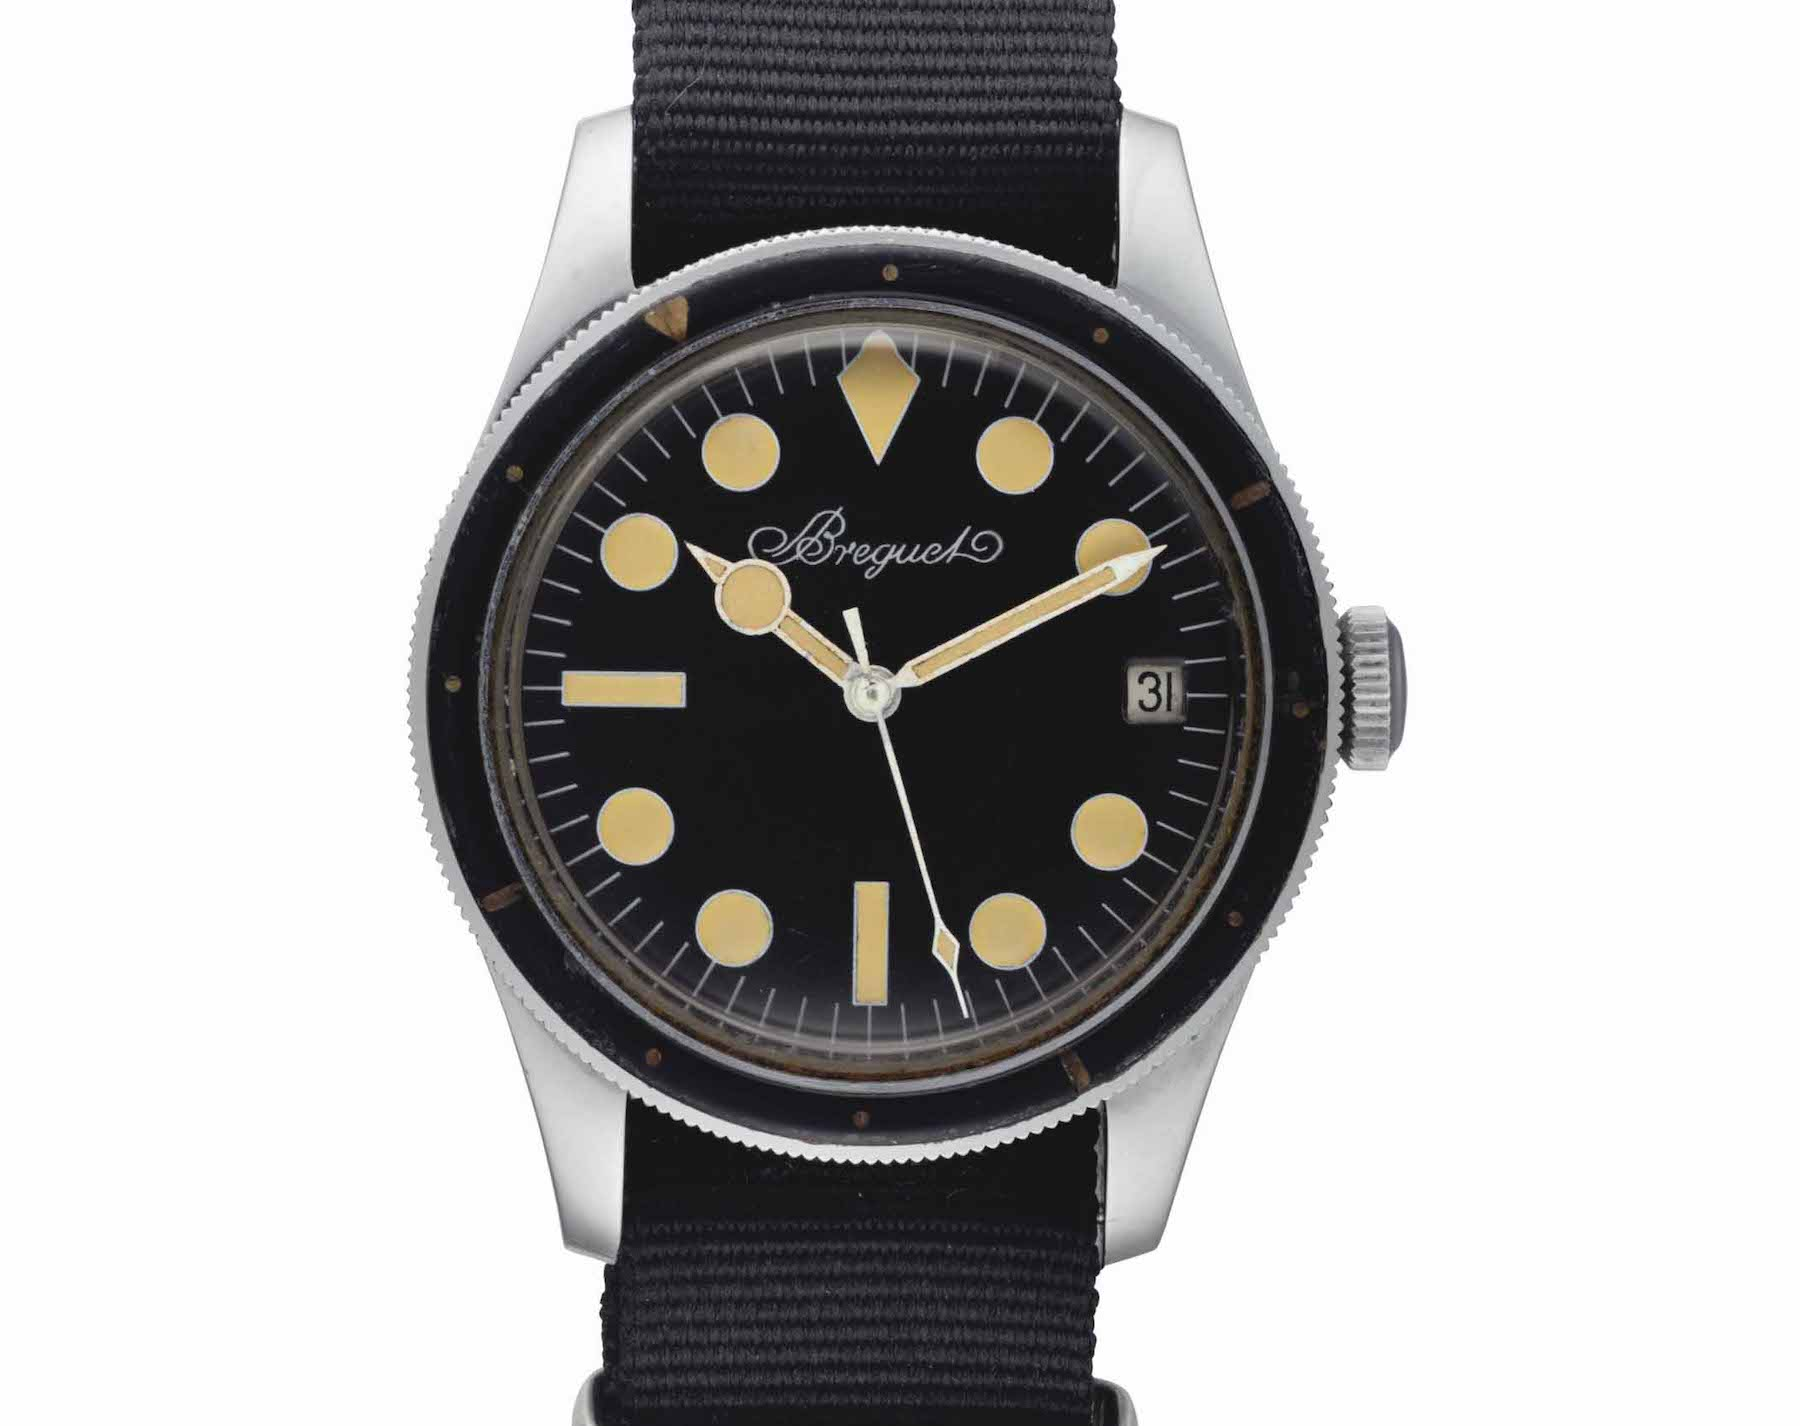 An example of this rare Breguet Diver, as worn by Dan Gurney in 1965 - Image by Christie's